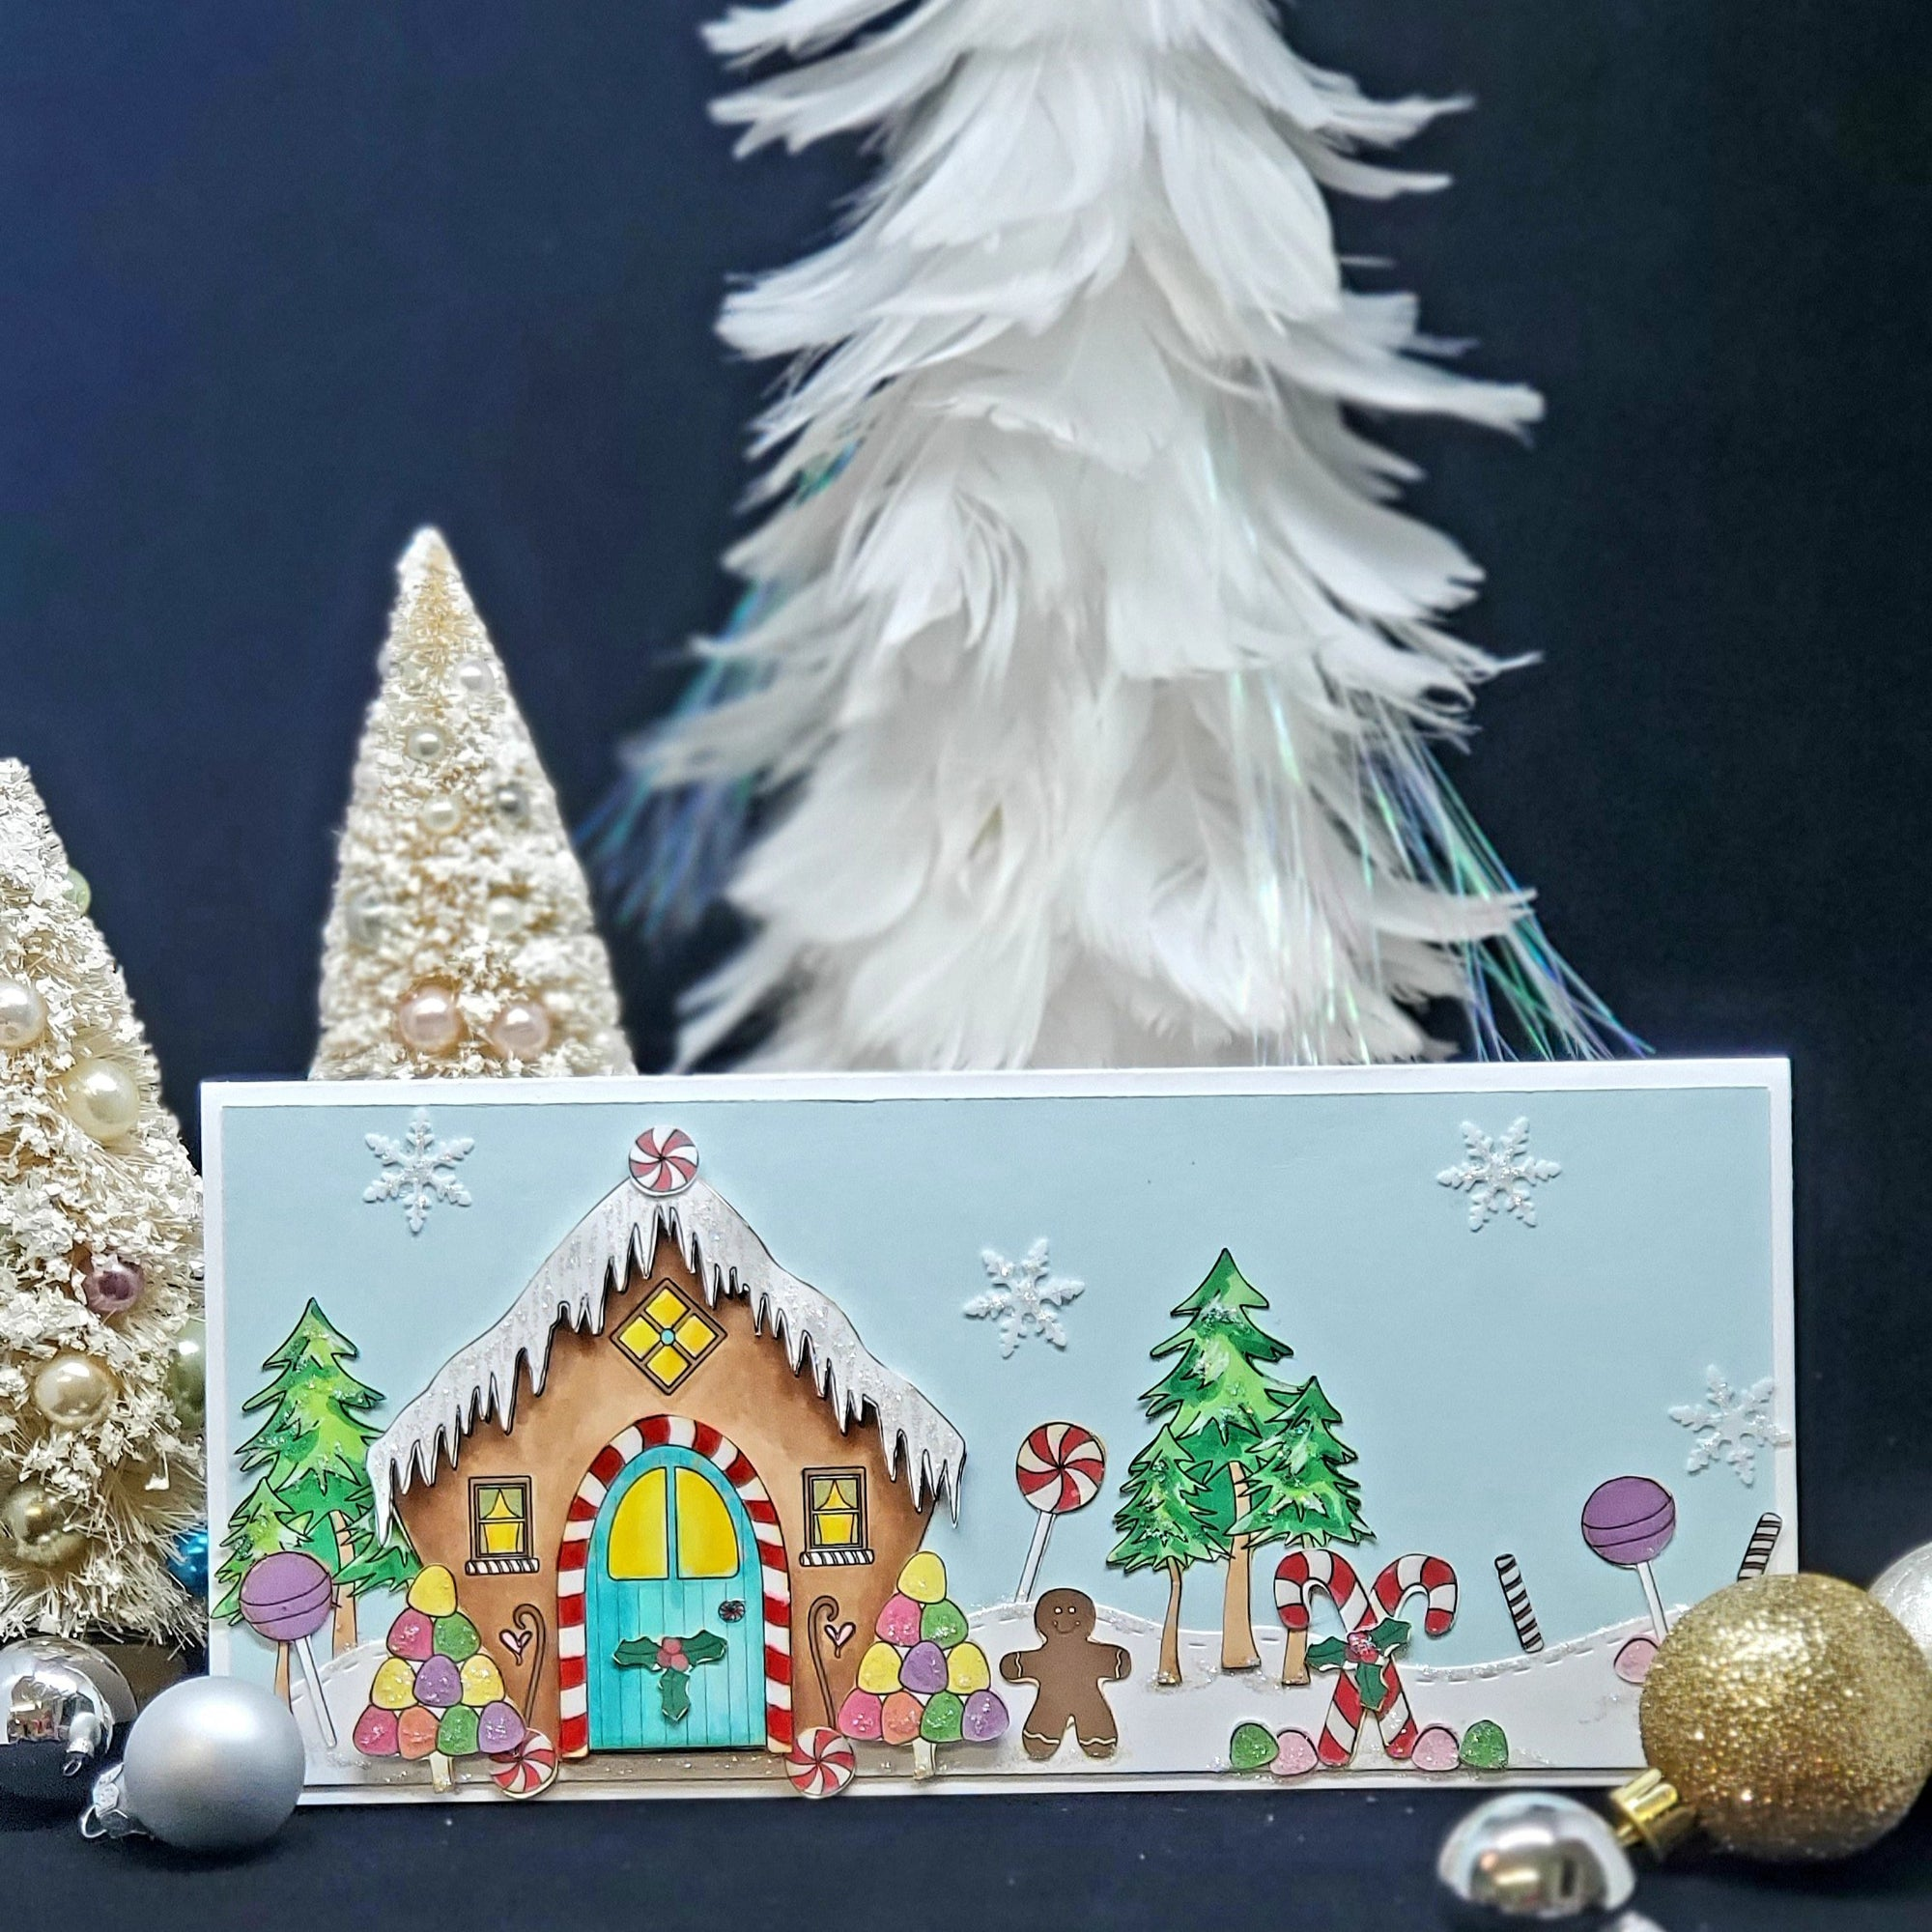 Riley & Co Gingerbread Slimline Project Kit